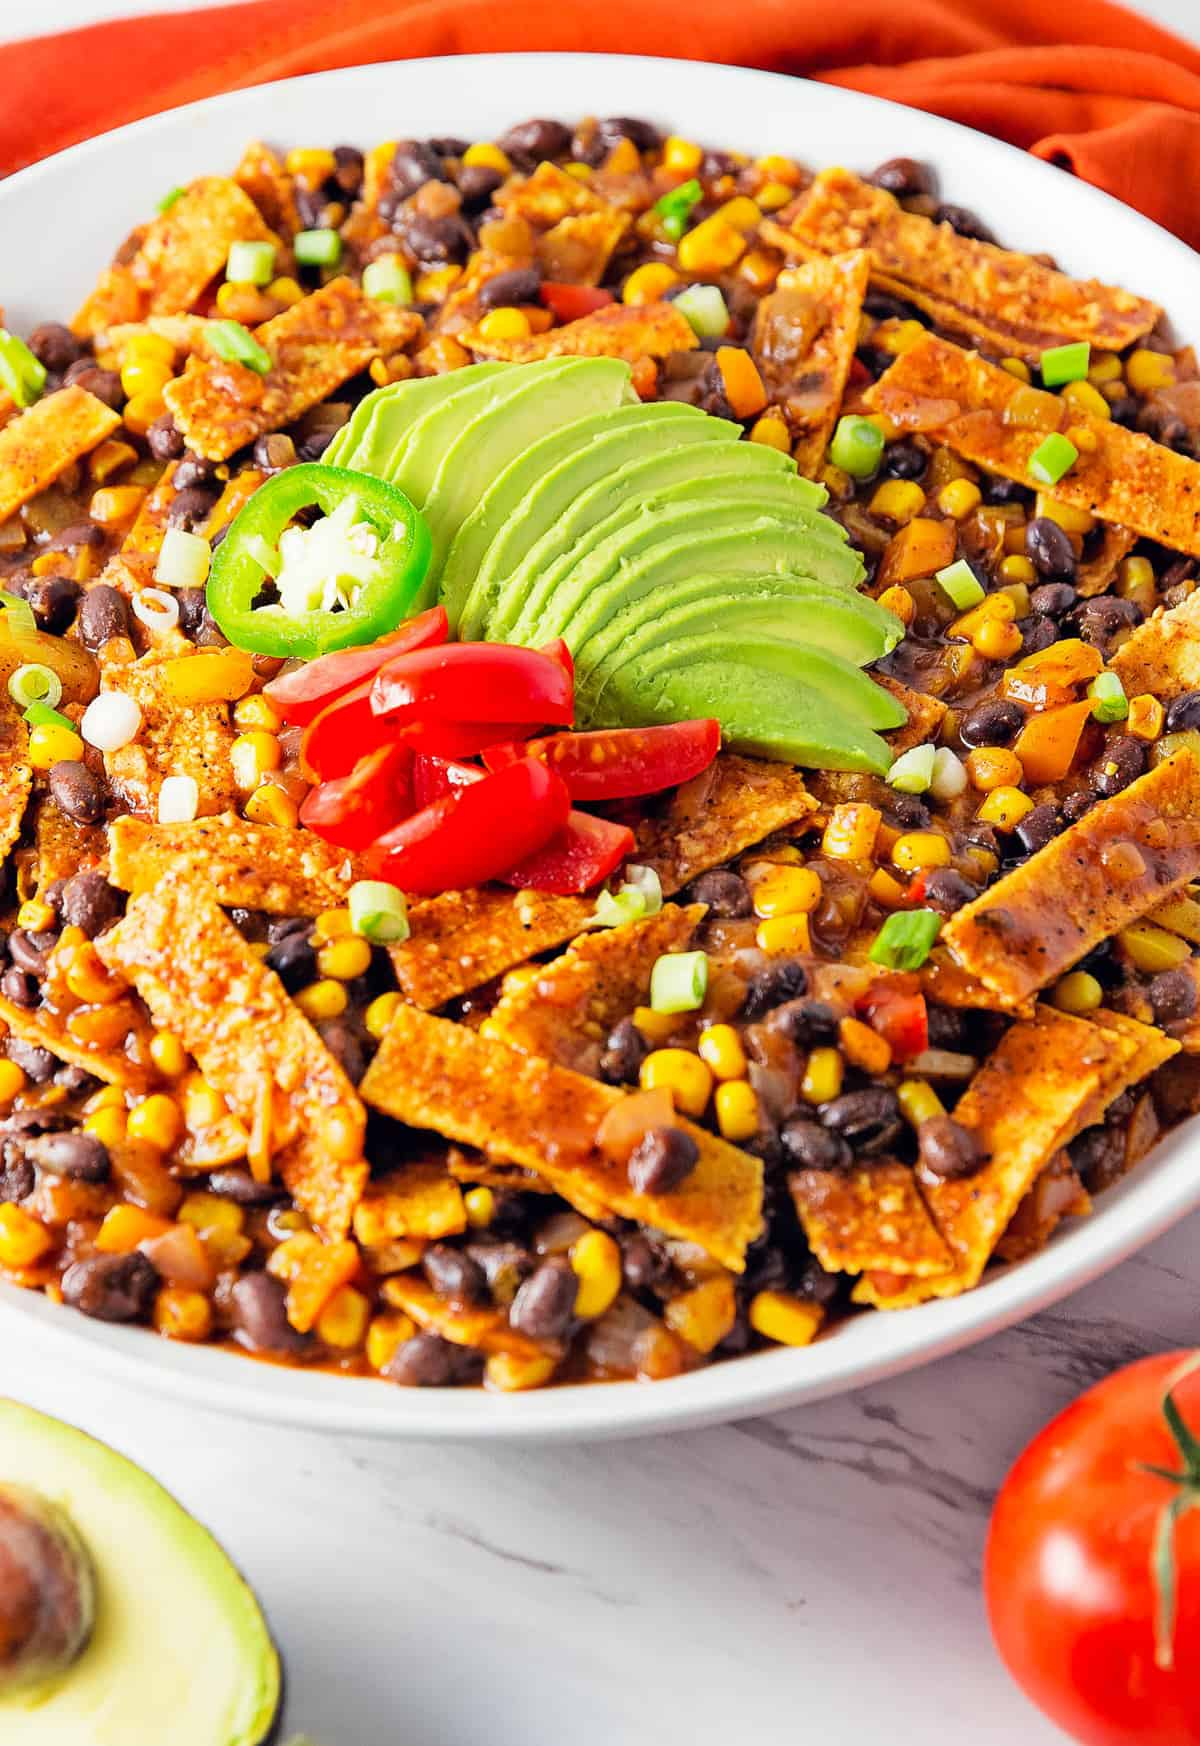 enchilada skillet, enchilada, enchiladas, tortillas, recipe, enchilada recipe, enchilada skillet recipe, vegan, vegan recipe, whole food plant based recipe, whole food plant based, vegetarian, vegetarian recipe, gluten free, gluten free recipe, vegan dinner, vegan meals, vegetarian dinner, vegetarian meal, whole food plant based dinner, whole food plant based meal, gluten free dinner, gluten free meal, healthy, oil free, no oil, bell peppers, corn, black beans, enchilada sauce, peppers, tomato, quick dinner, fast dinner, entertaining, wfpb, dairy free, no dairy, traditional, Mexican, classic, delicious, the best, winter, fall, spring, summer, fast, easy, quick, simple, 30 minutes,